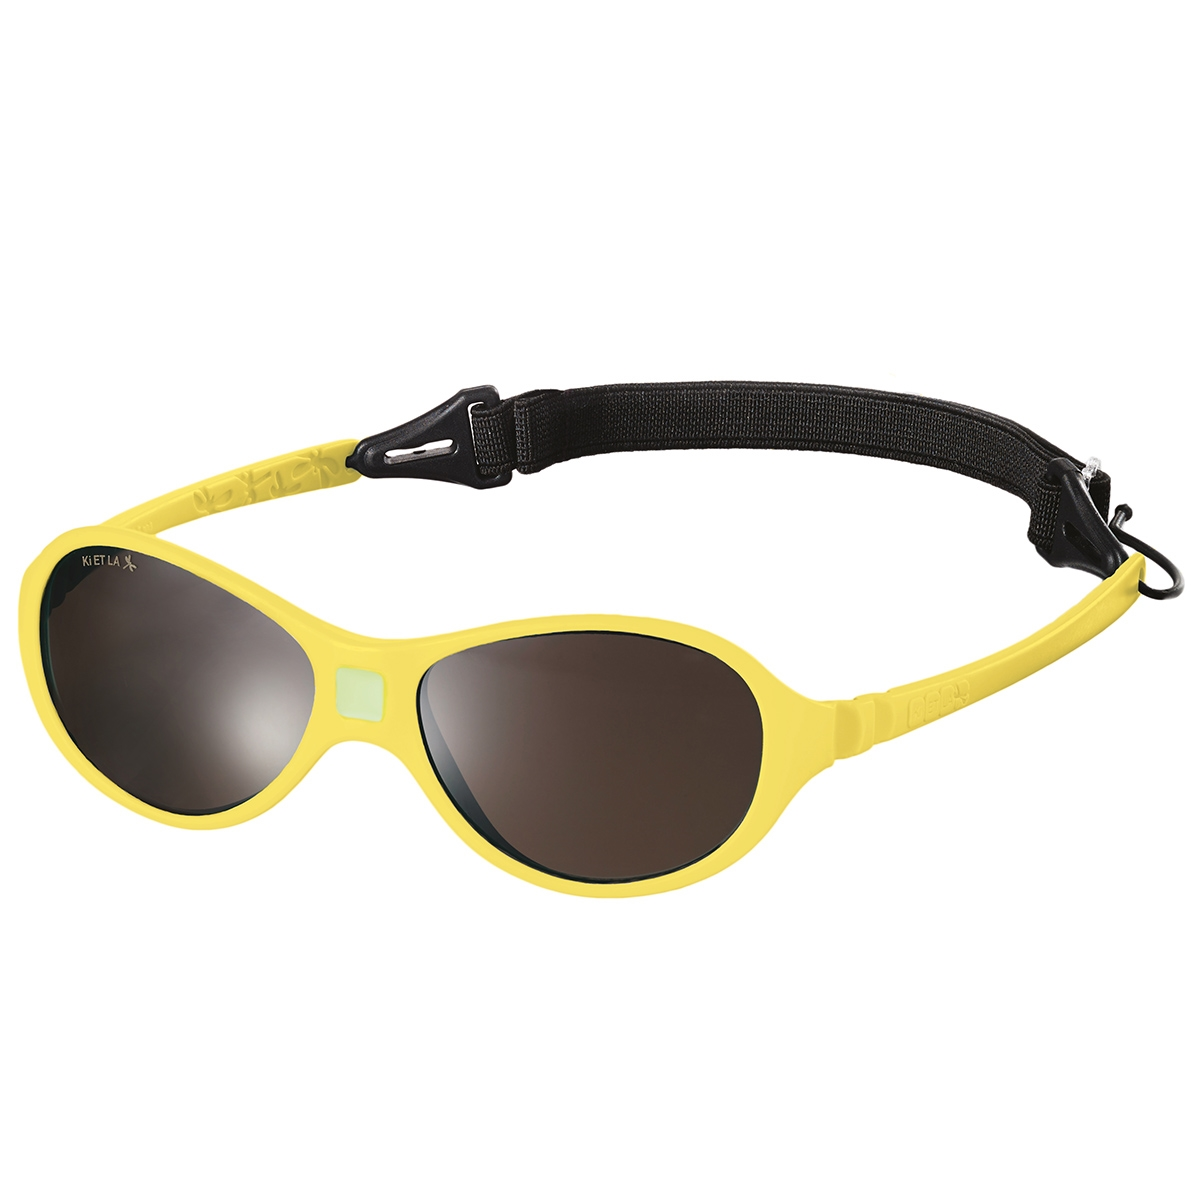 Mycey Children's Yellow Sunglasses As Mass 12-30 Months